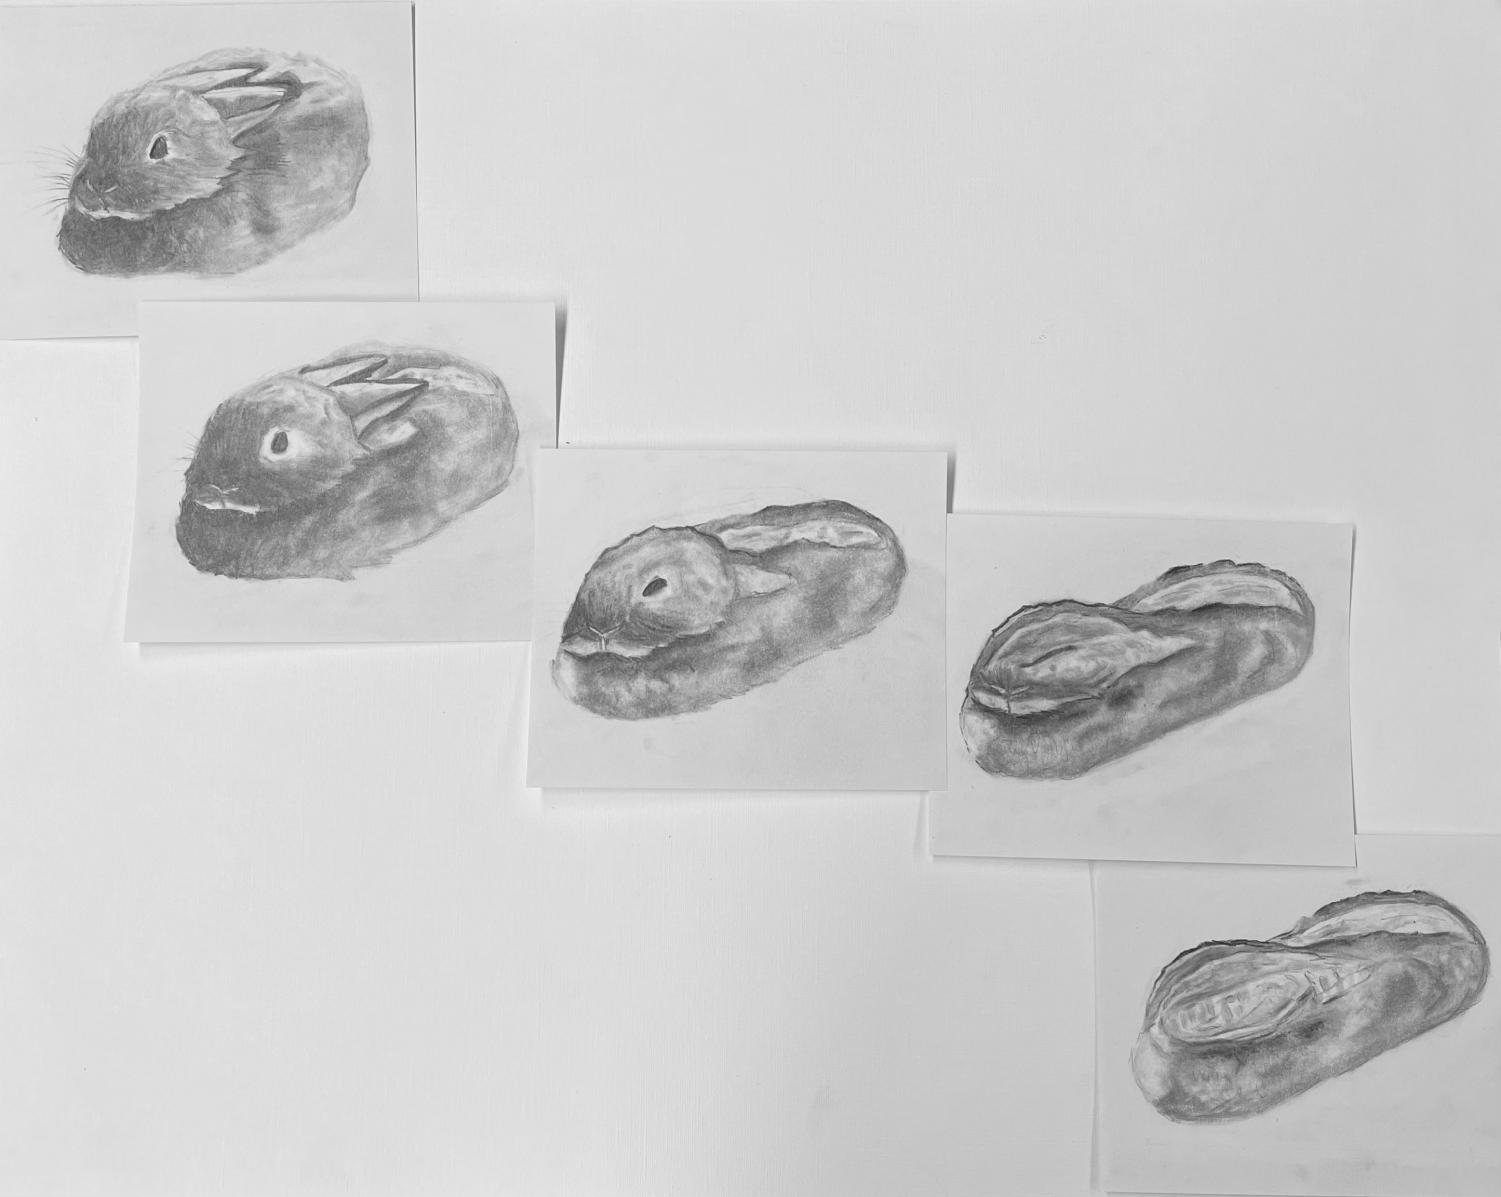 """Foundations Studio - Metamorphosis Project:  Students were asked to find an animal online and then take a photo of an object in a corresponding position. After rendering each picture individually, they had to create three """"middle images"""" that morphed the drawings into each other."""